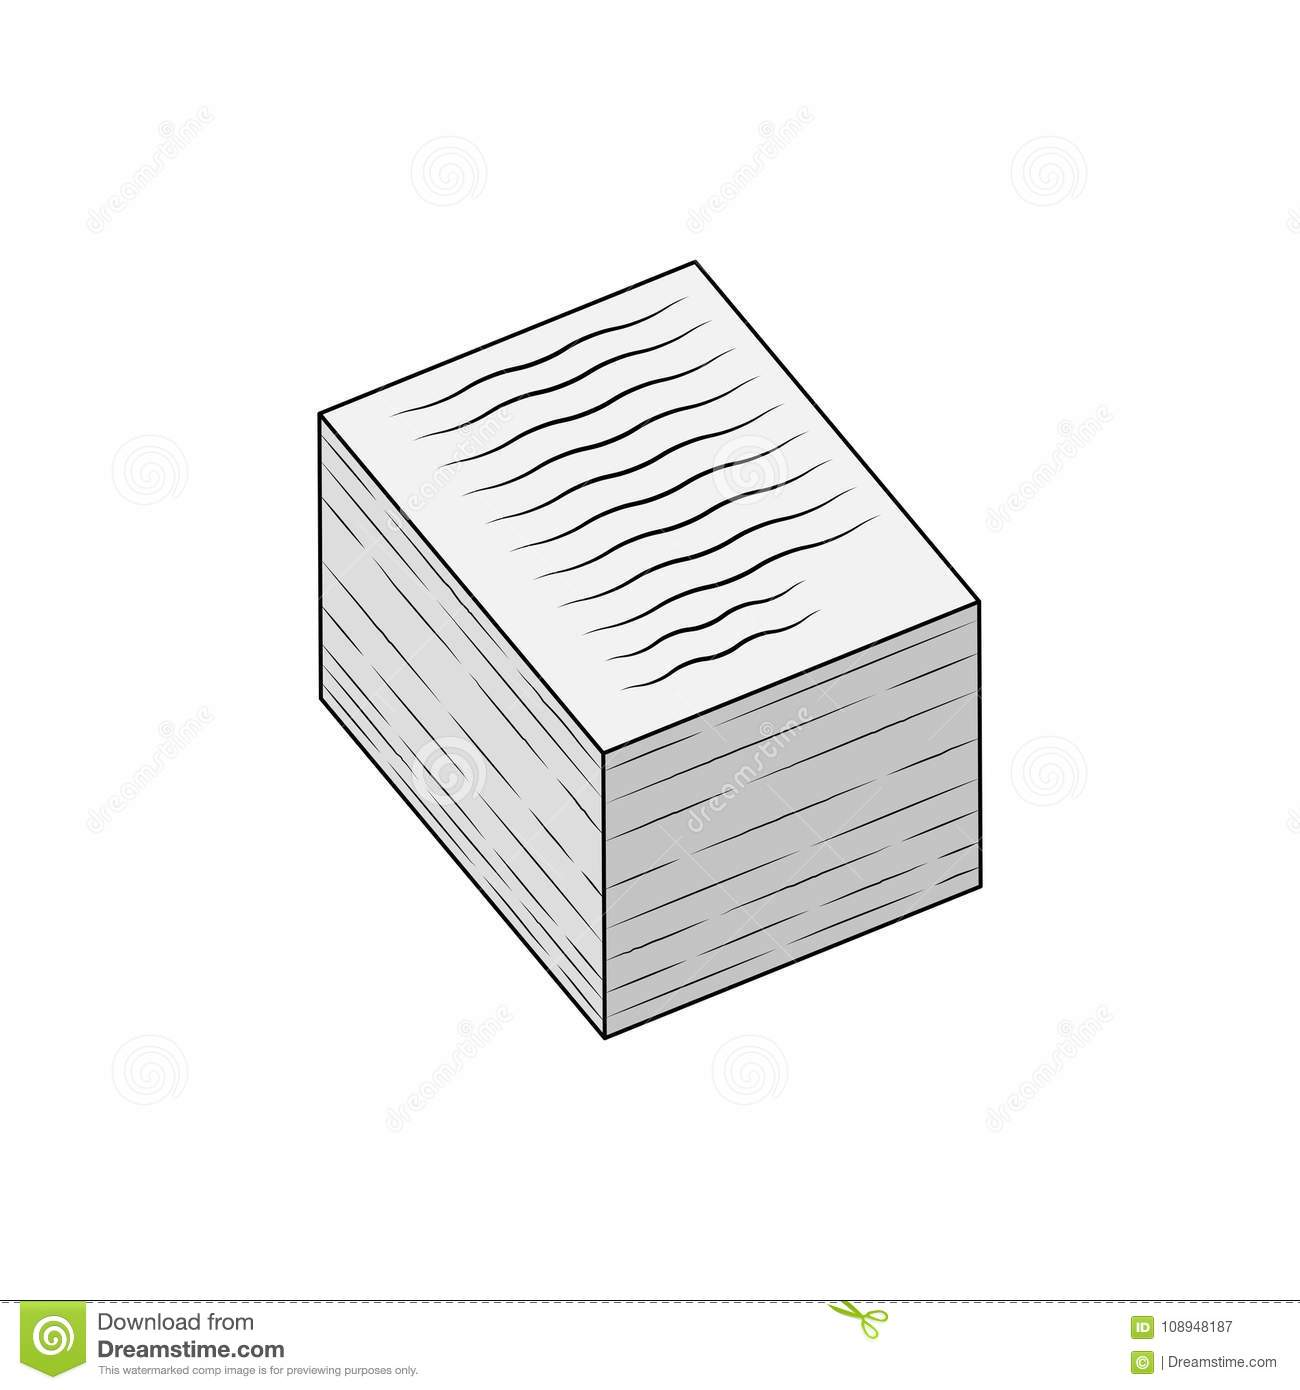 stack of papers icon, isolated on white stock vector - illustration